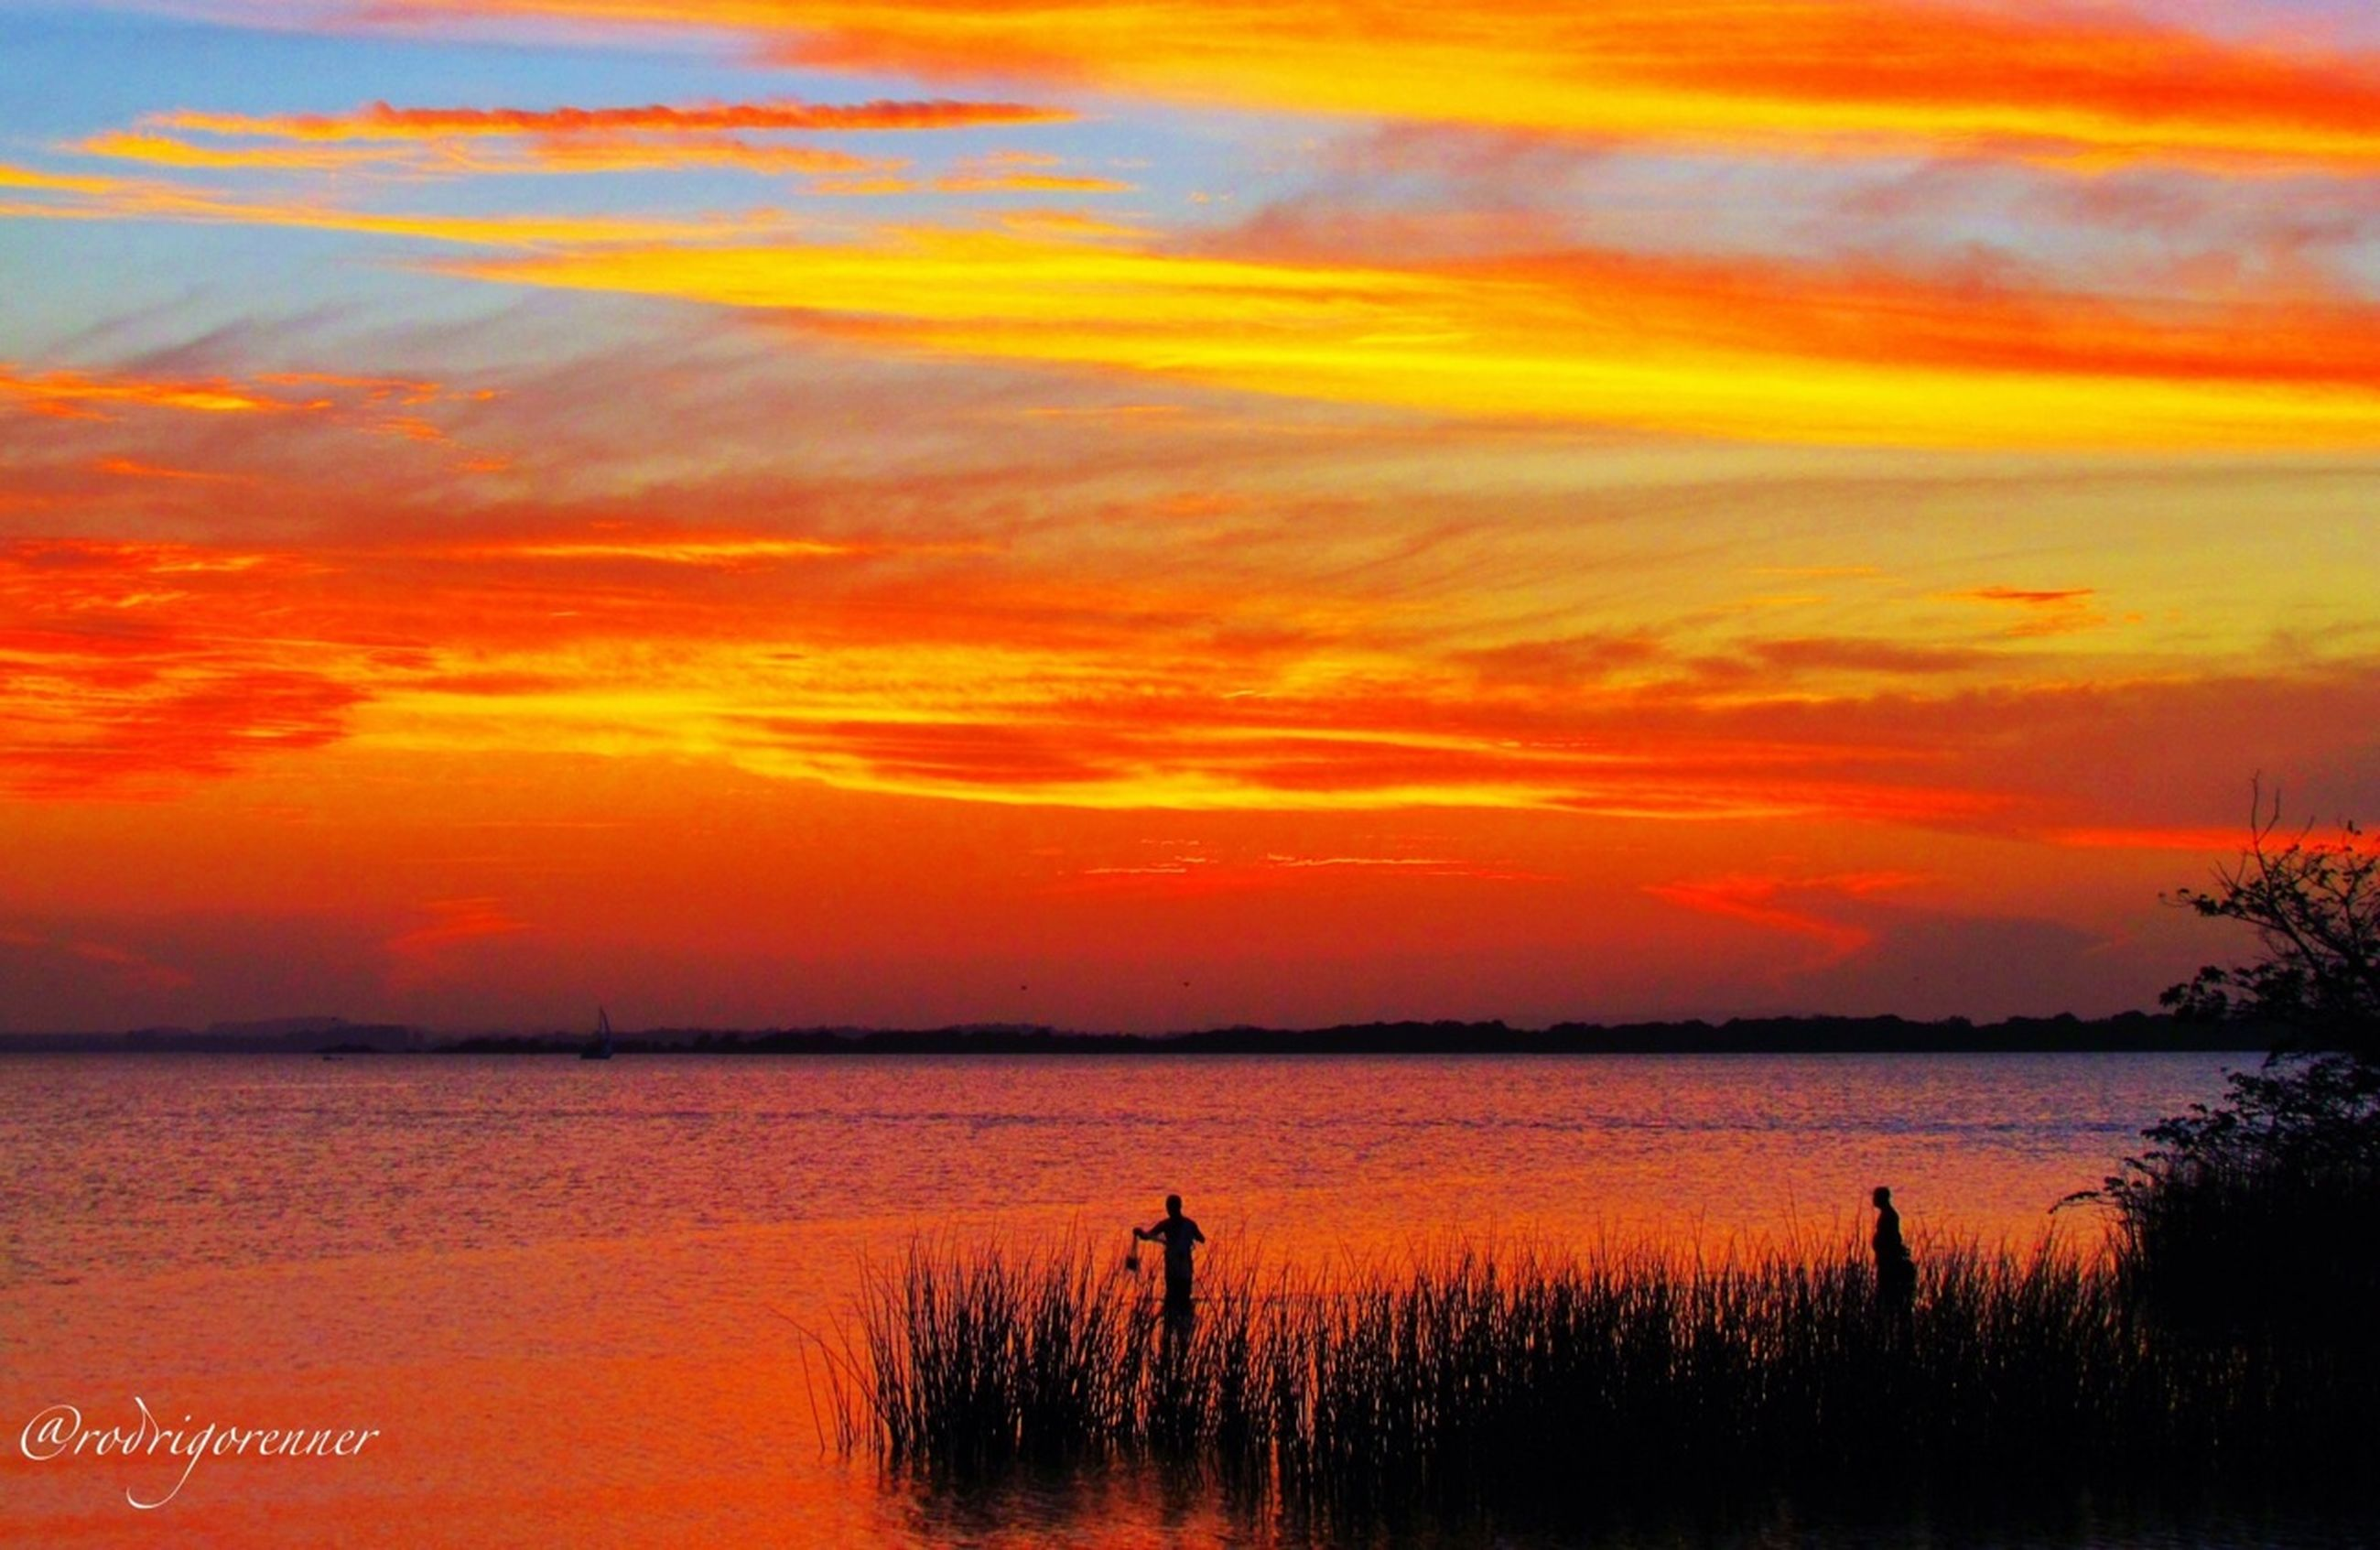 sunset, orange color, water, sky, scenics, beauty in nature, tranquil scene, tranquility, cloud - sky, idyllic, nature, lake, sea, reflection, cloud, dramatic sky, silhouette, outdoors, river, cloudy